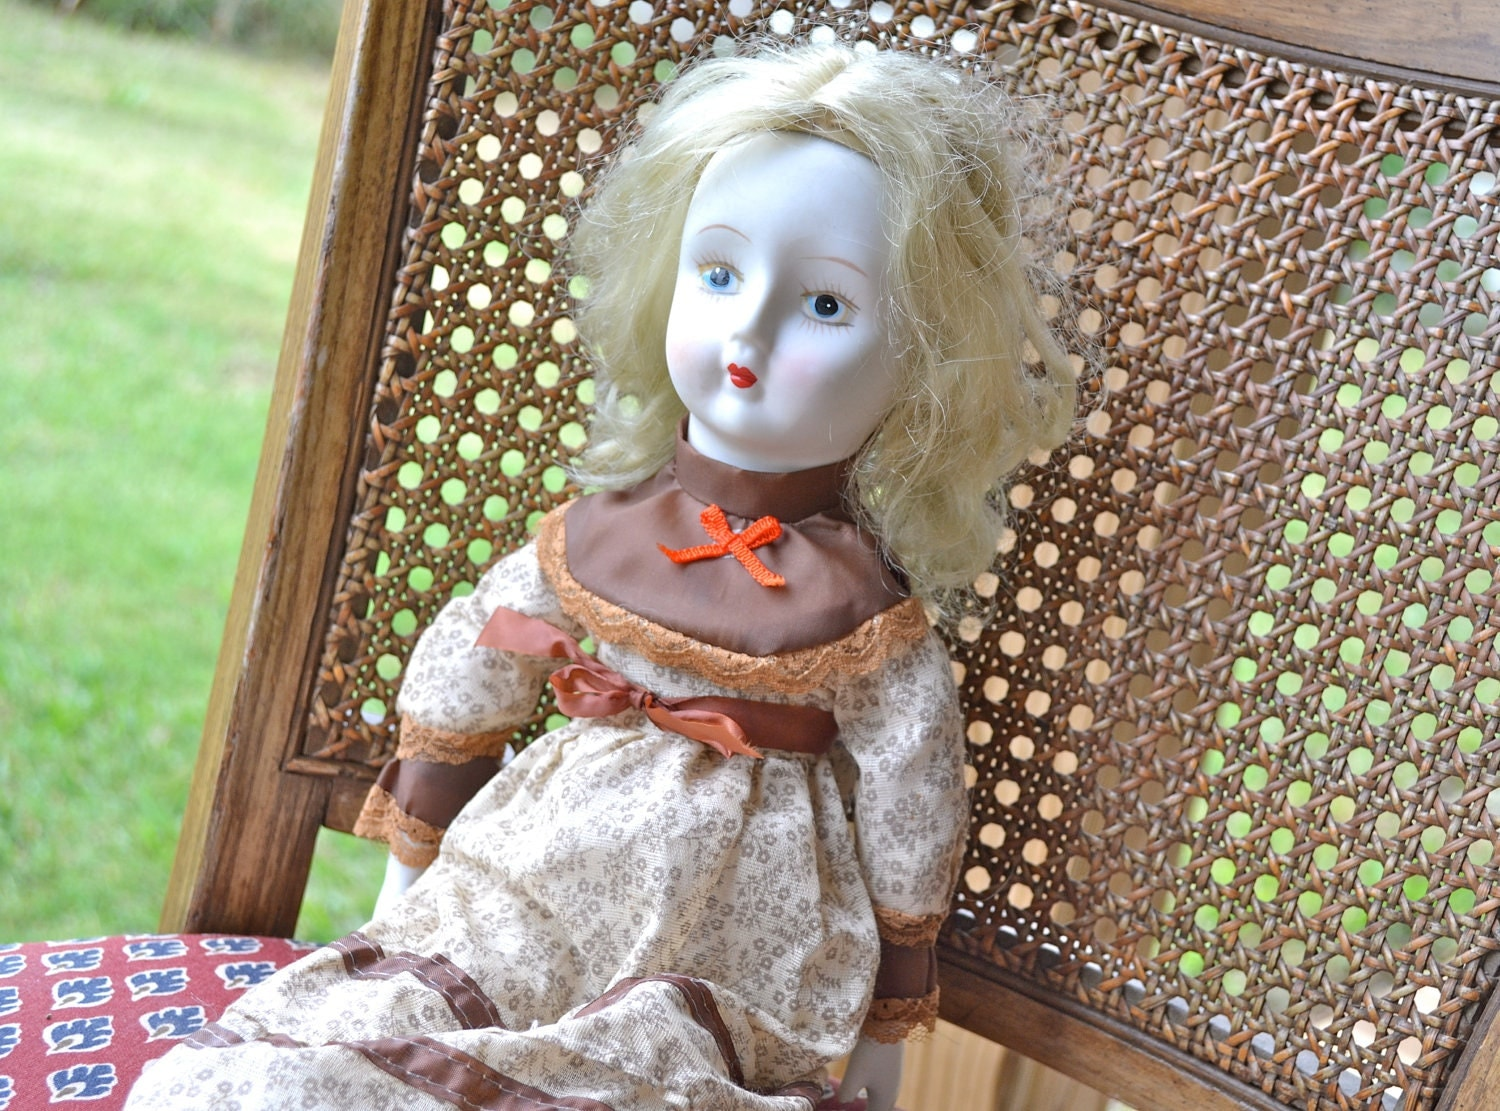 What Determines the Value of a Collectible Doll?